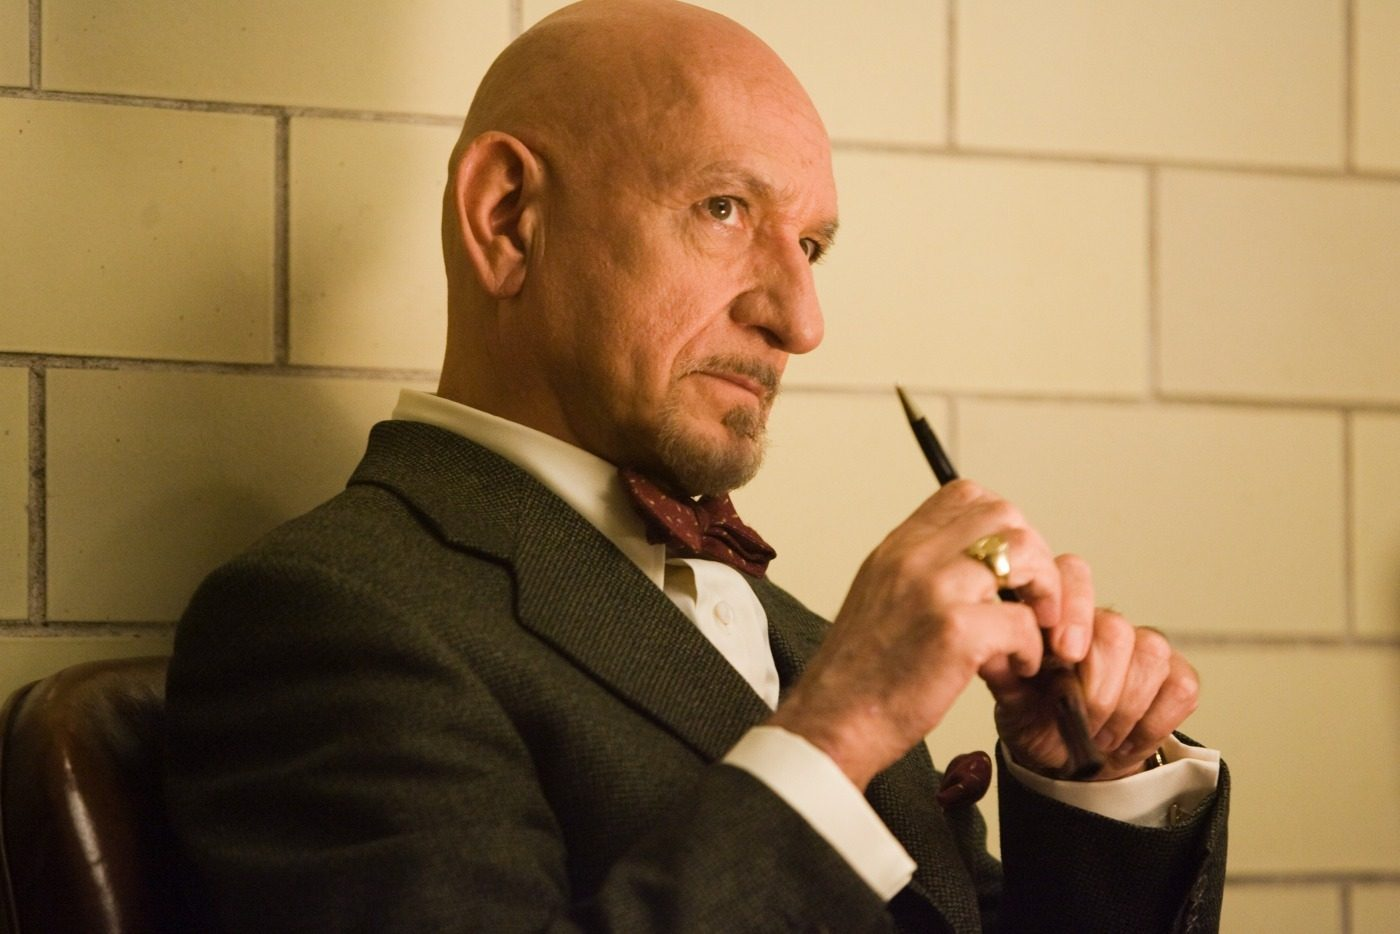 Ben Kingsley to play Salvador Dalí